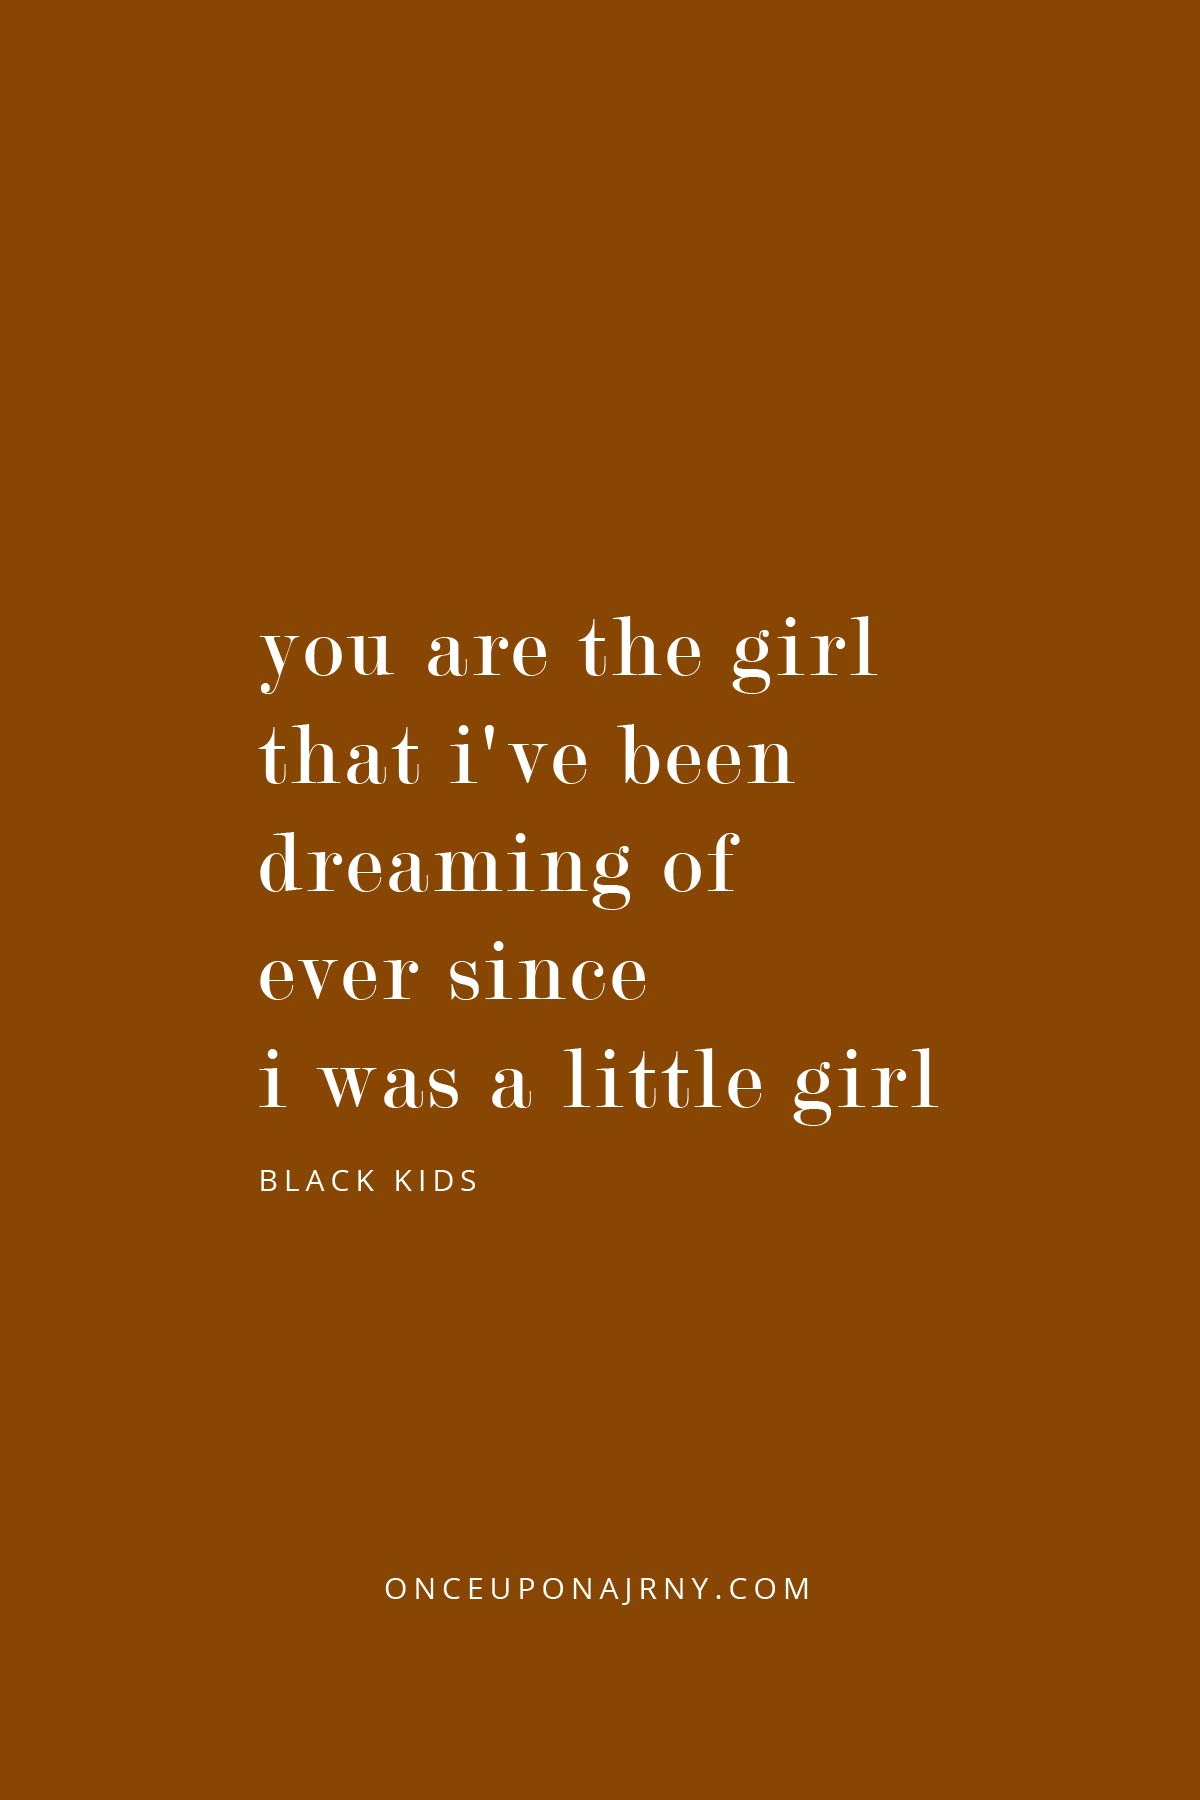 You are the girl that I've been dreaming of ever since I was a little girl - Black Kids lesbian quotes